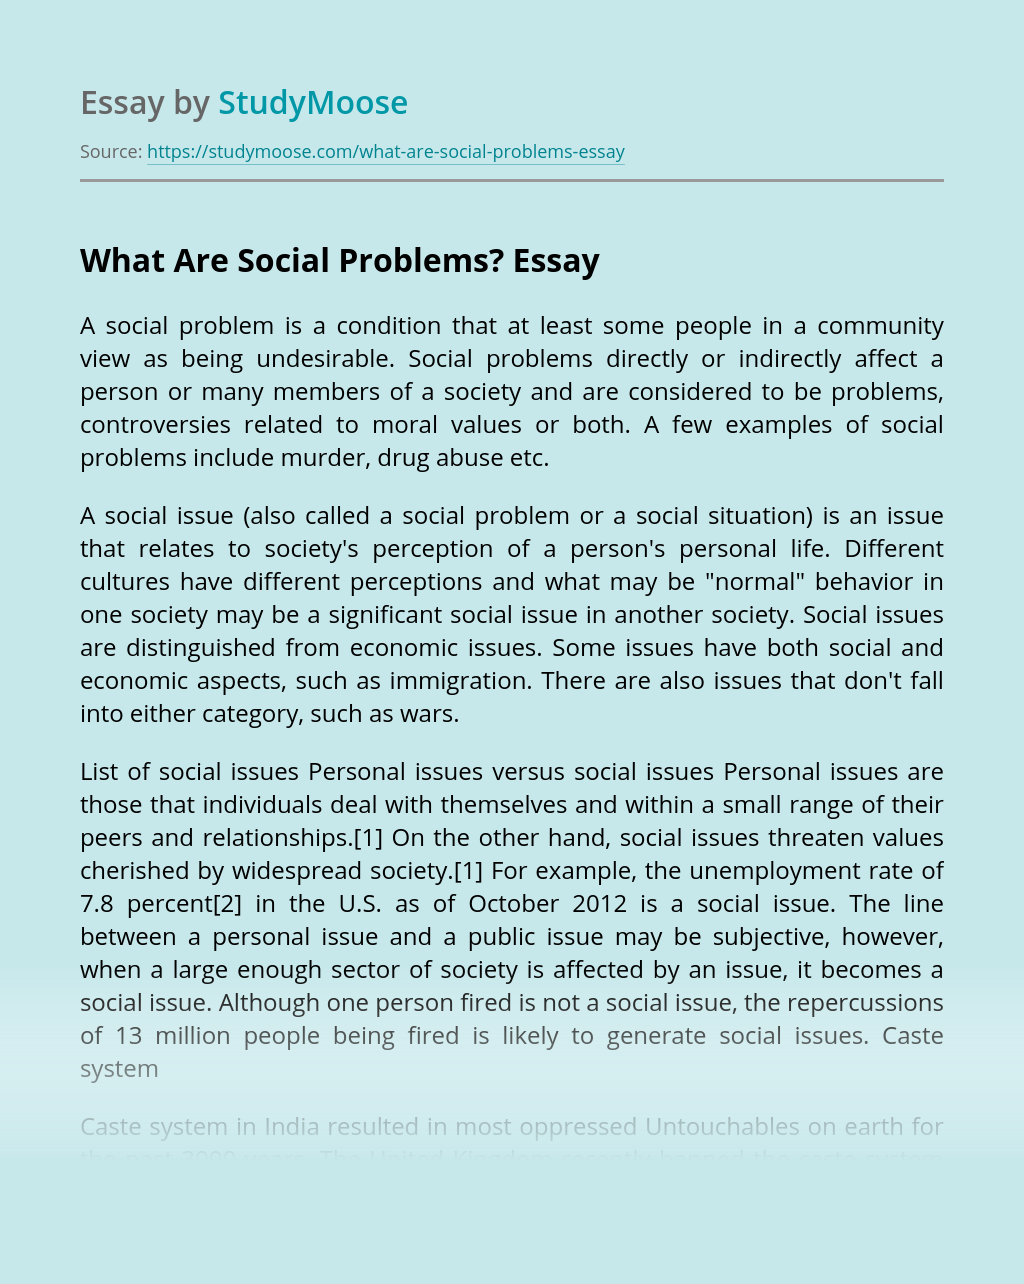 What Are Social Problems?